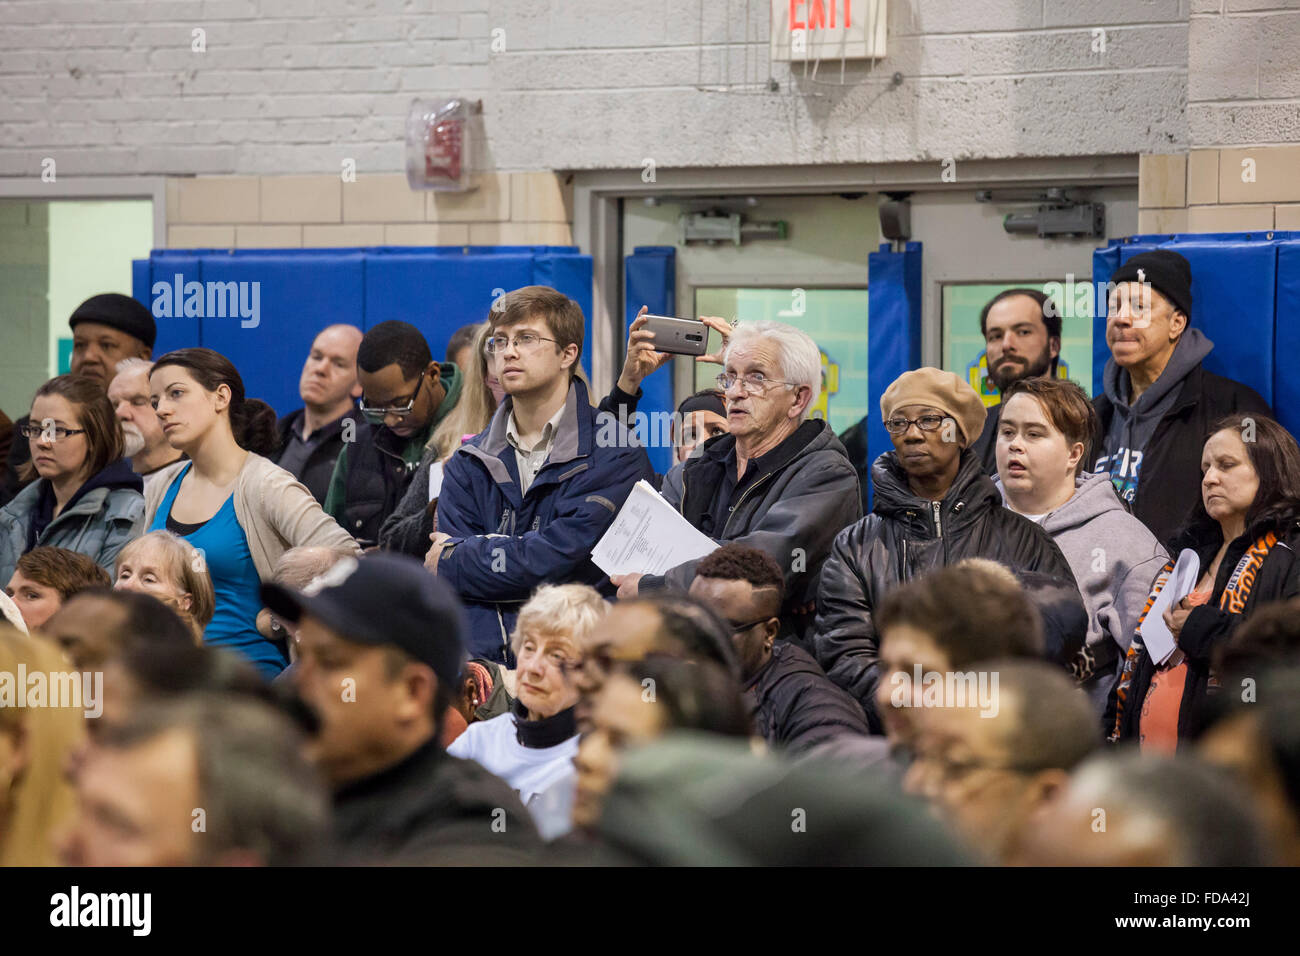 Detroit, Michigan, USA. 28th January 2016. A standing-room only crowd of residents from the neighborhood near Marathon - Stock Image